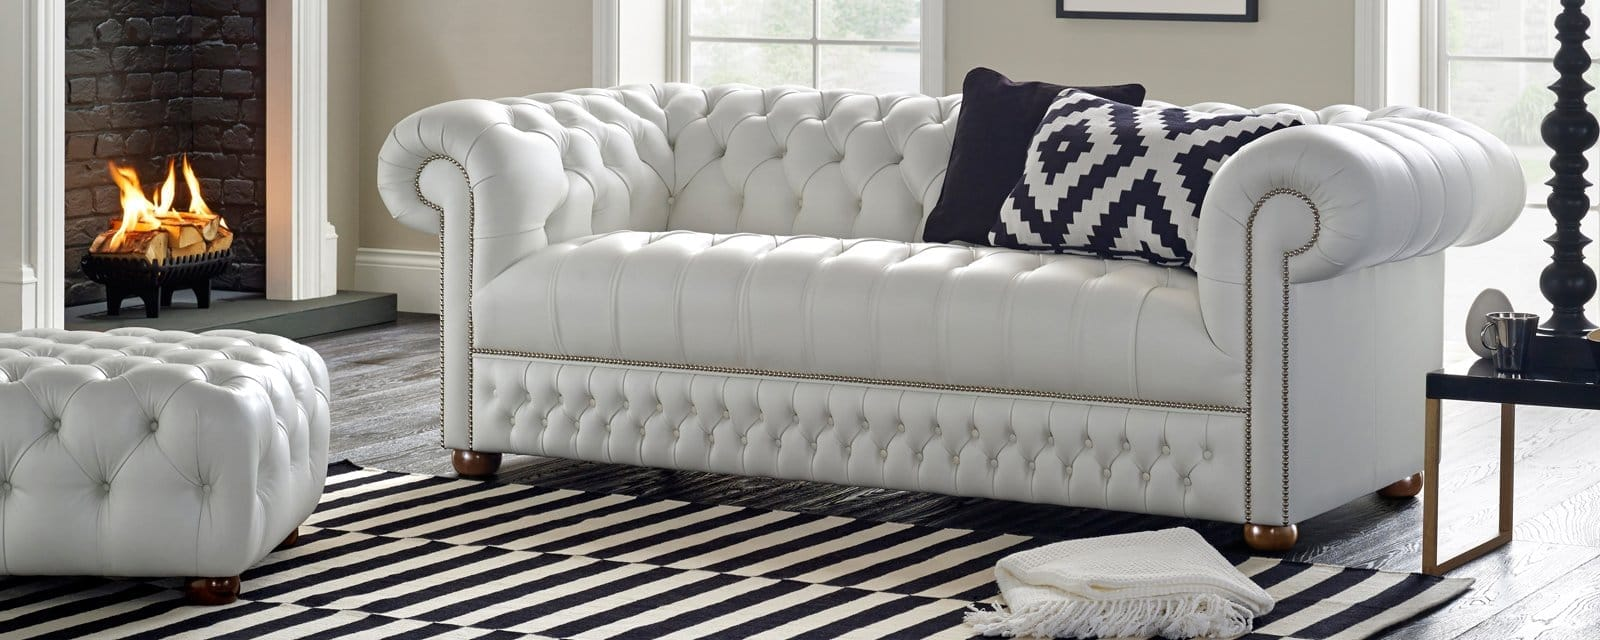 belgravia 2 seater sofa from sofas by saxon uk. Black Bedroom Furniture Sets. Home Design Ideas